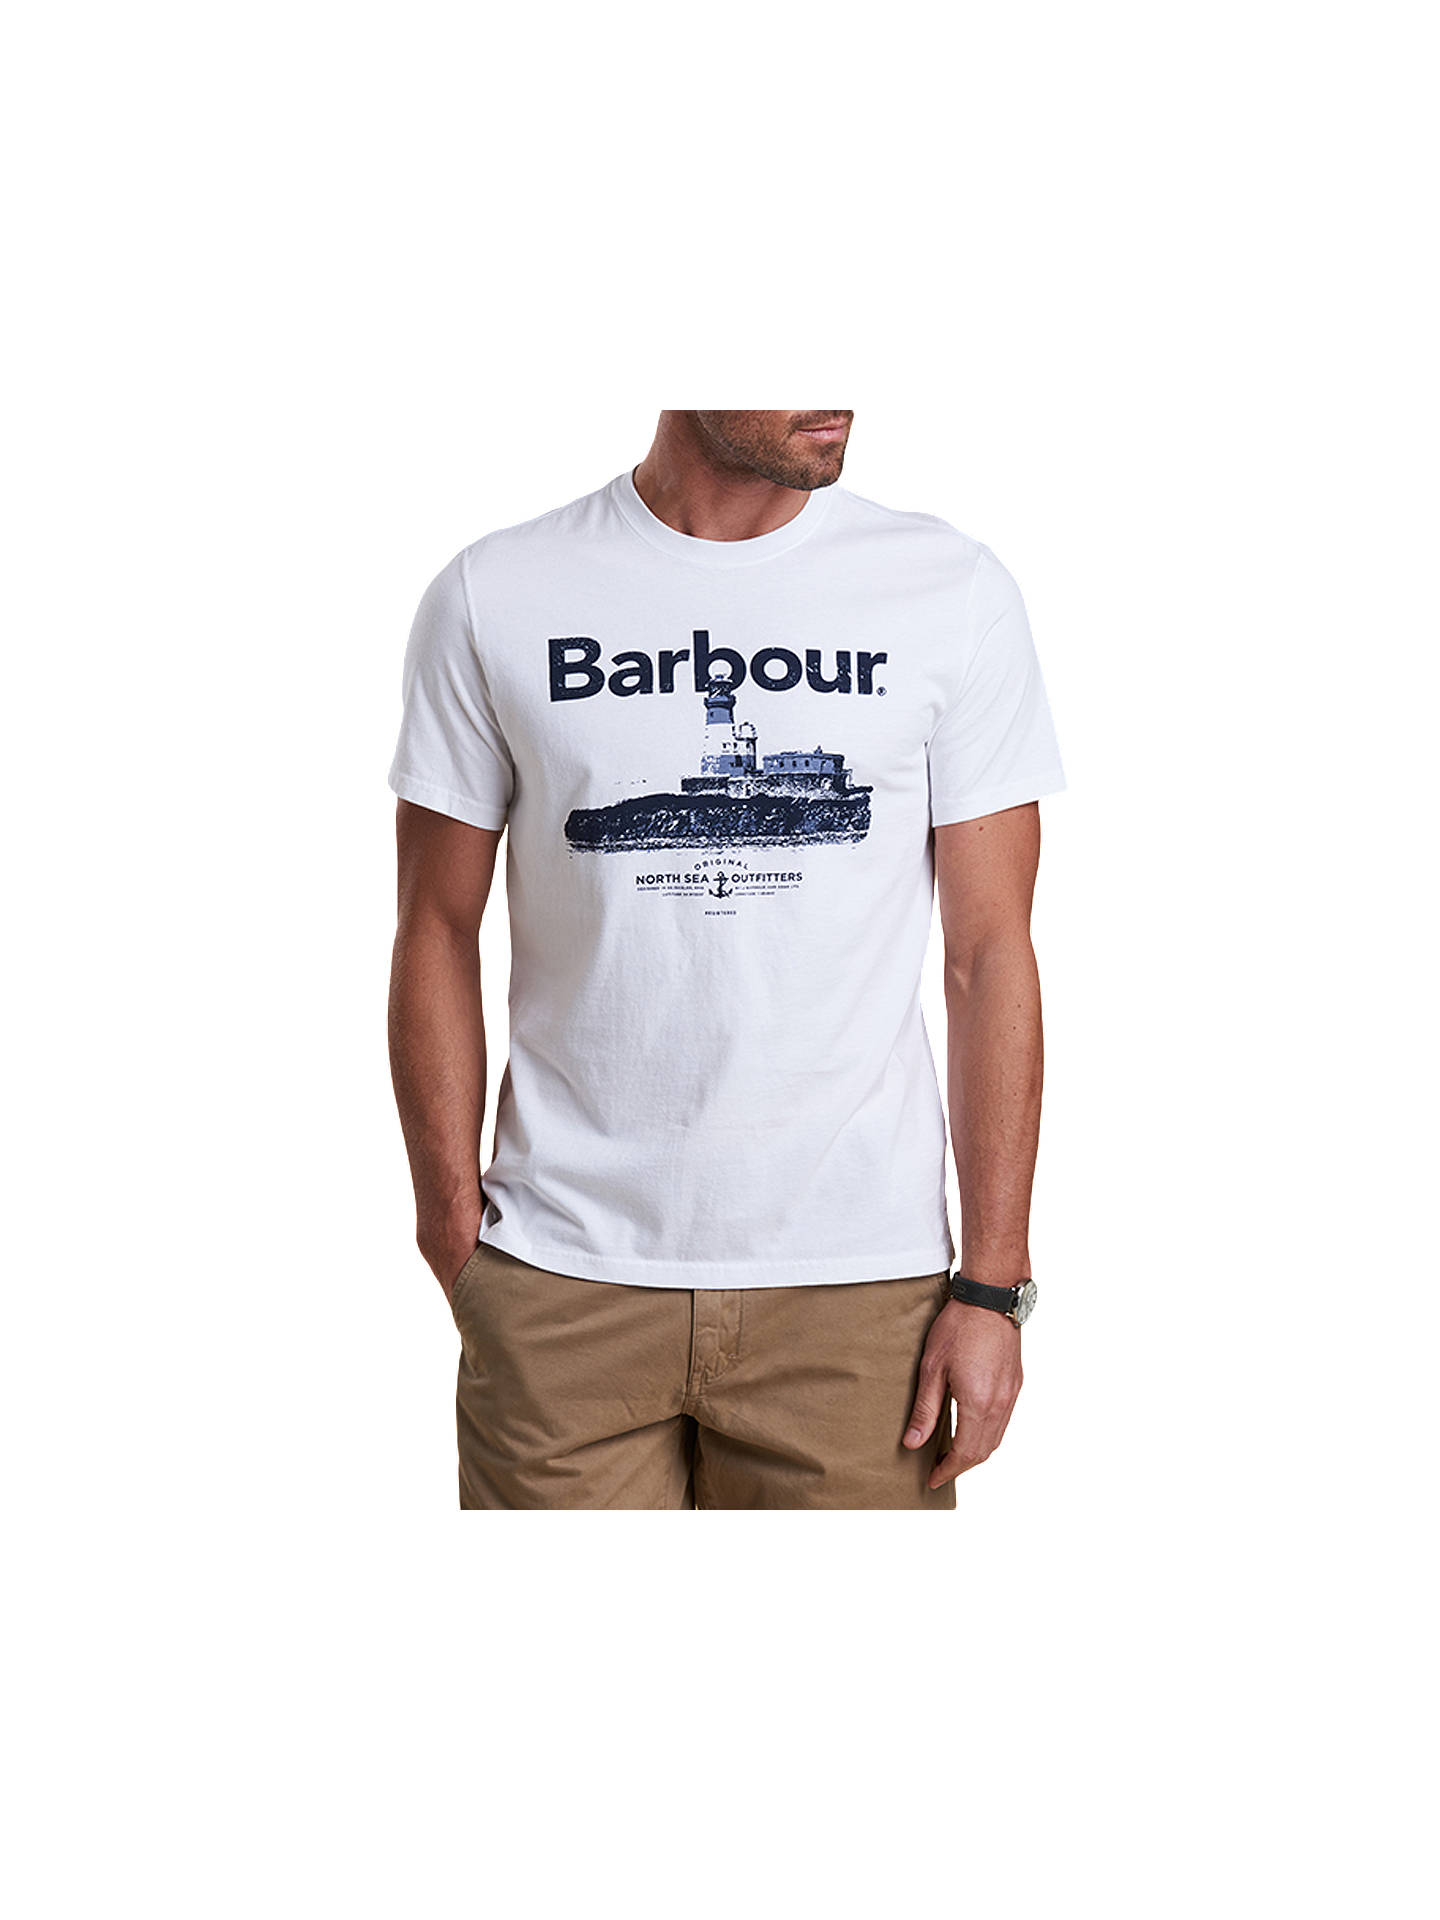 4fa3d73004 Buy Barbour Padstow Crew Neck T-Shirt, White, S Online at johnlewis.